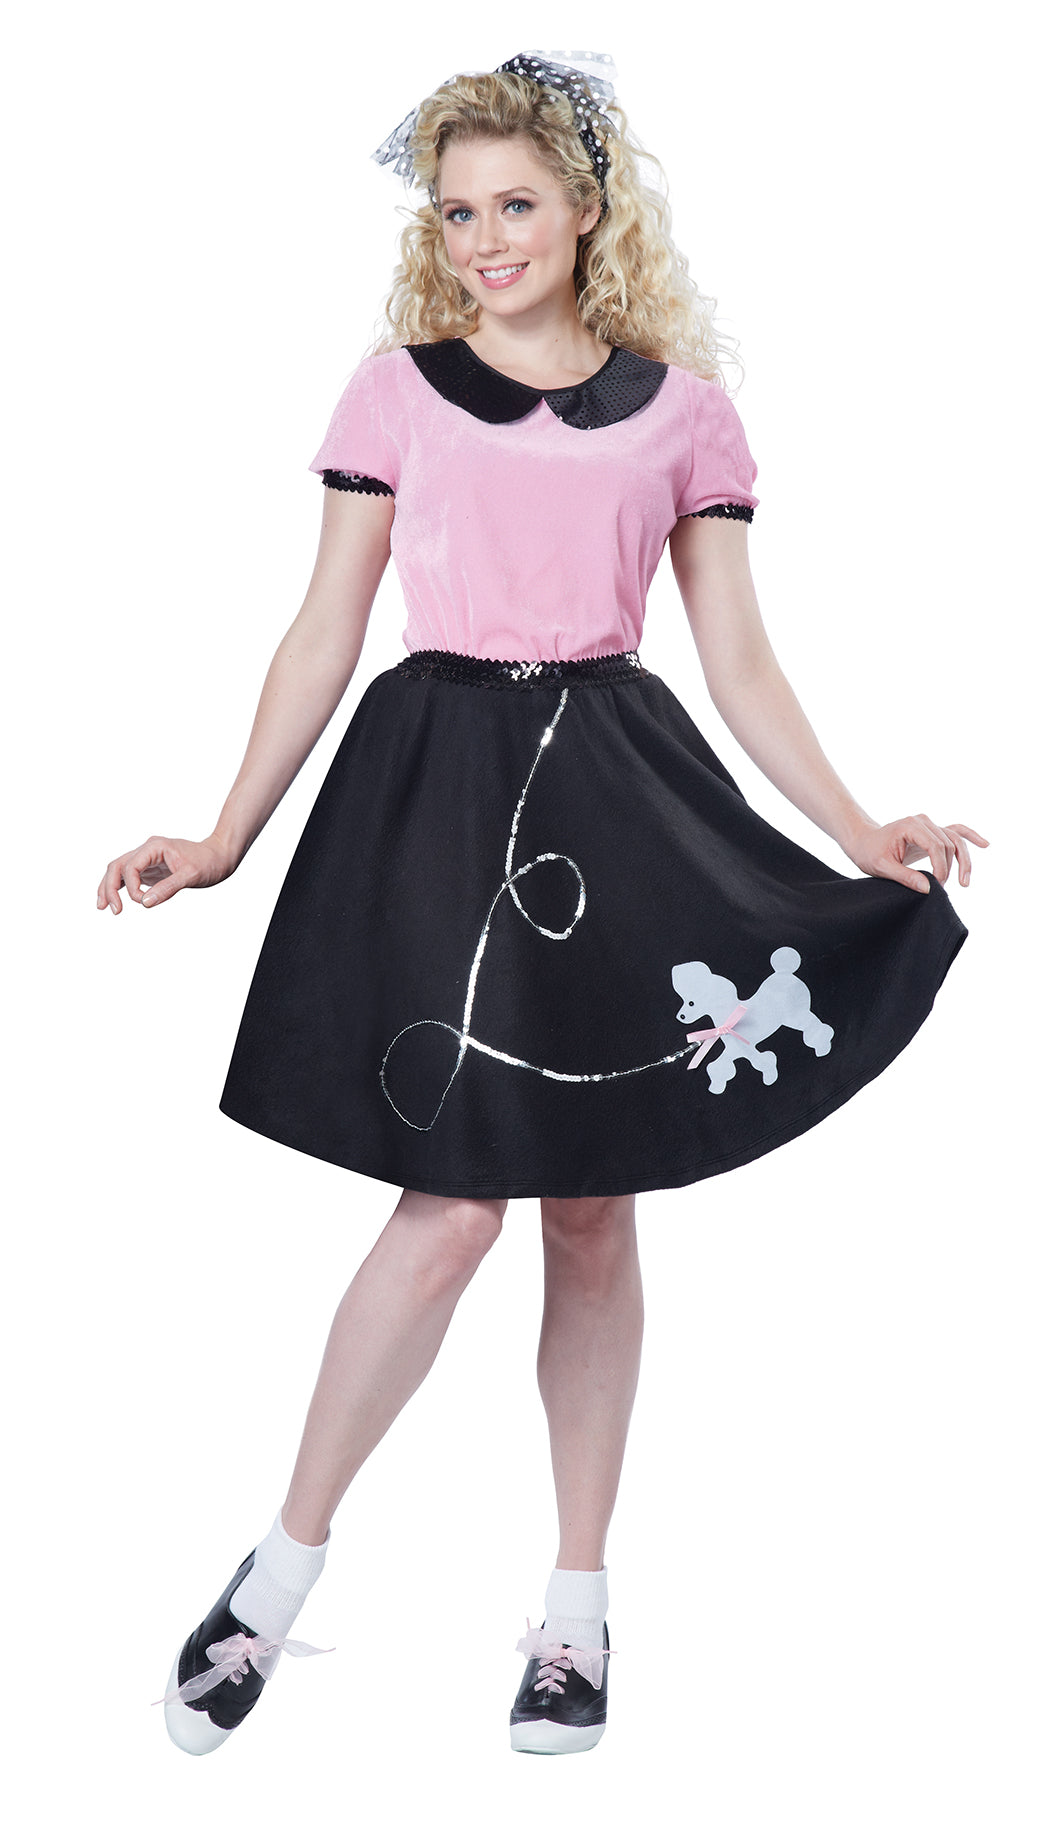 Adult 50s Hop with Poodle Skirt Costume